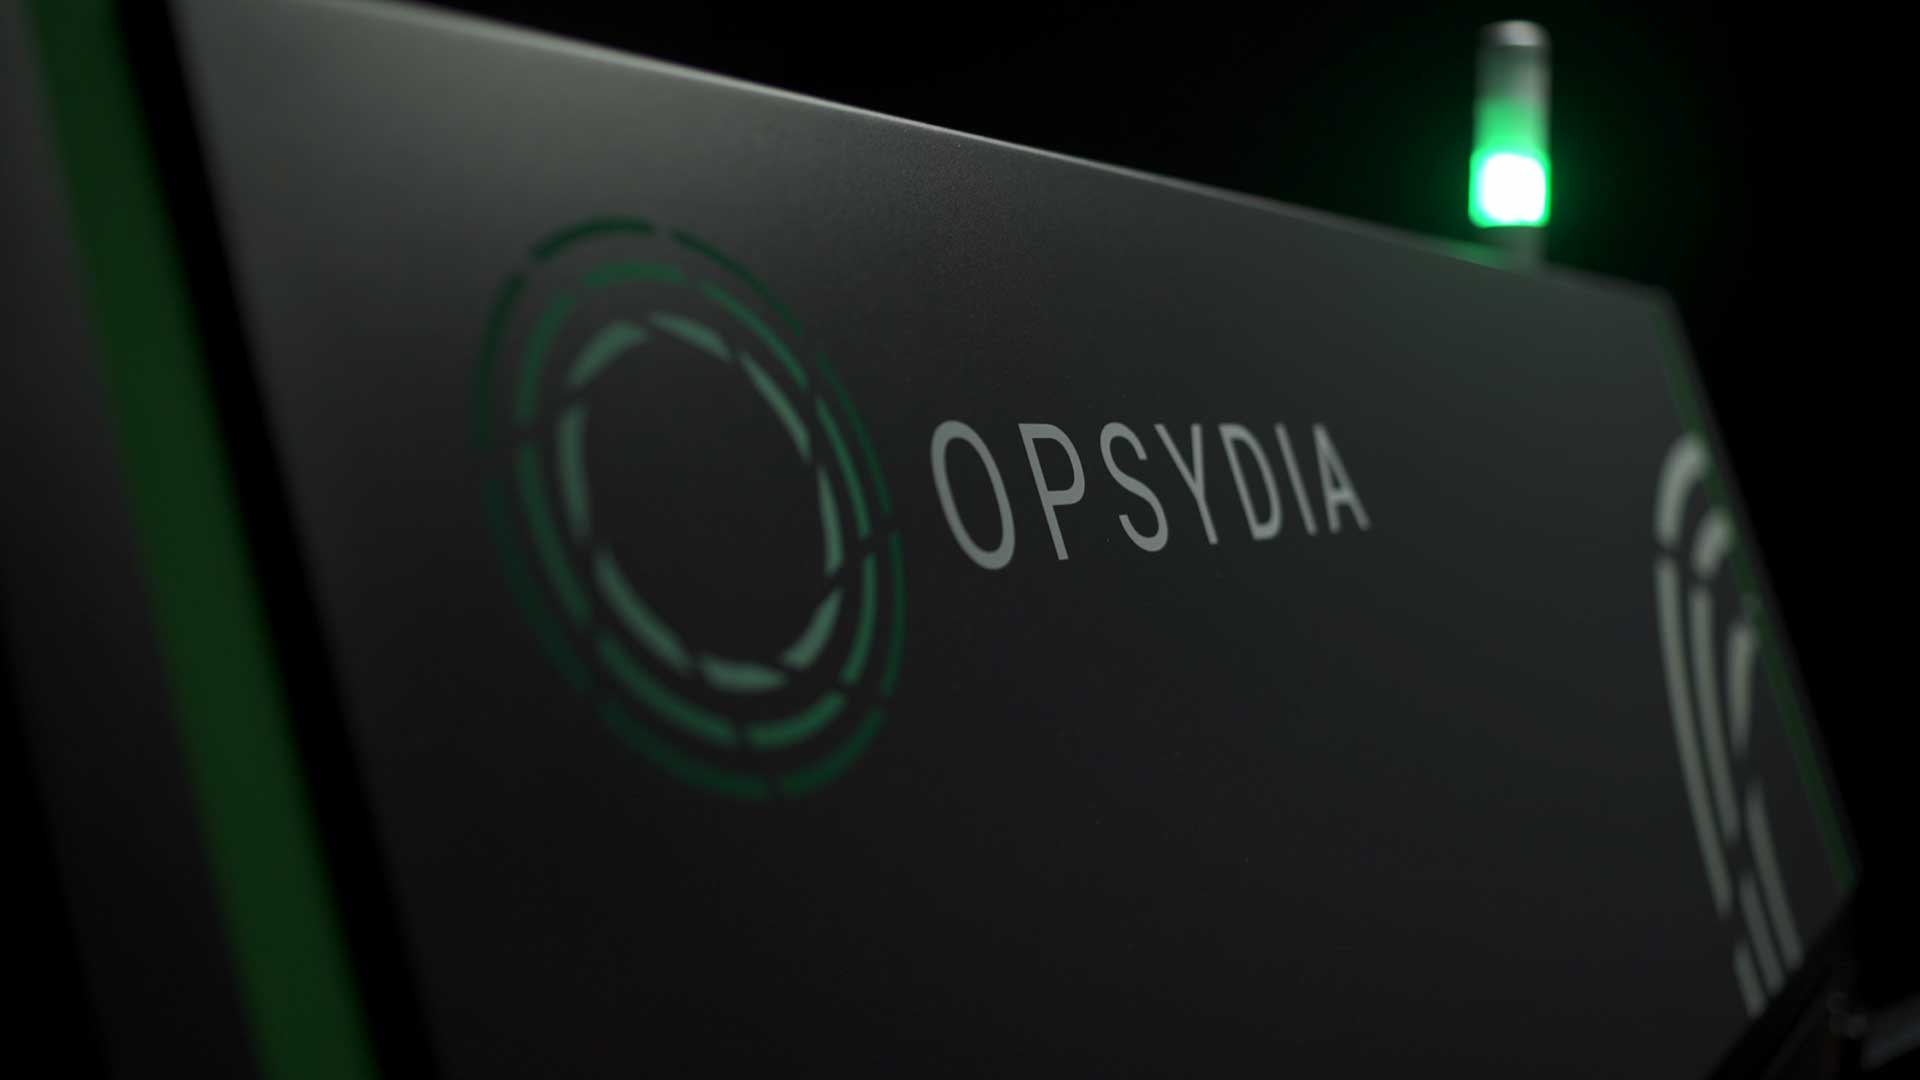 A closer look at the Opsydia System